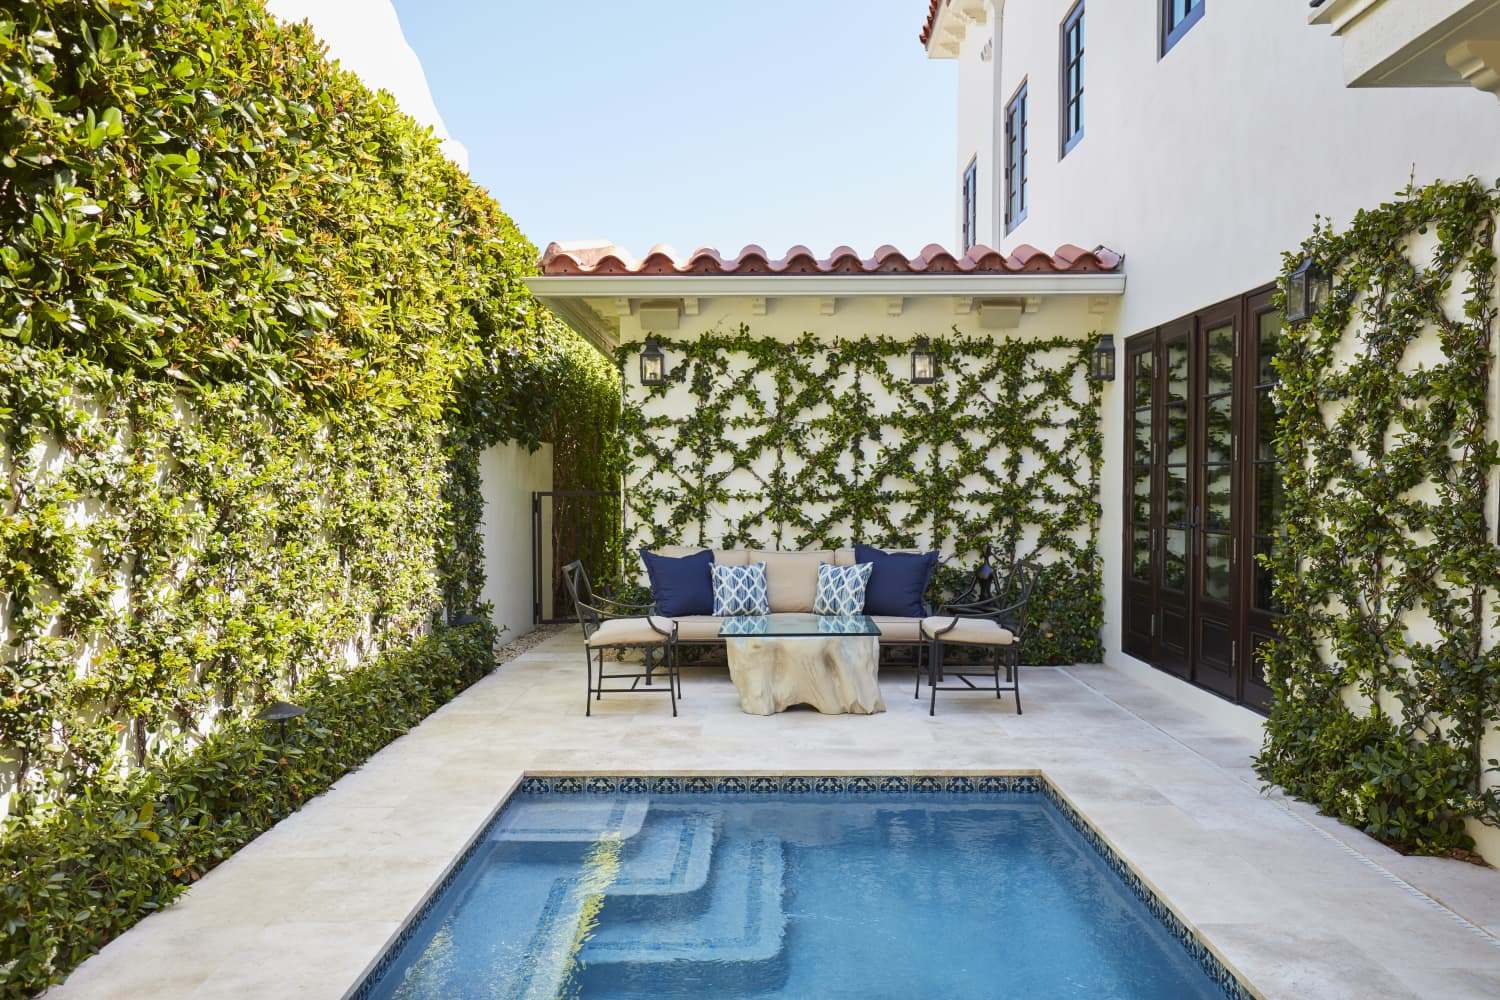 The Biggest Summer Trend This Year Prioritizes Home